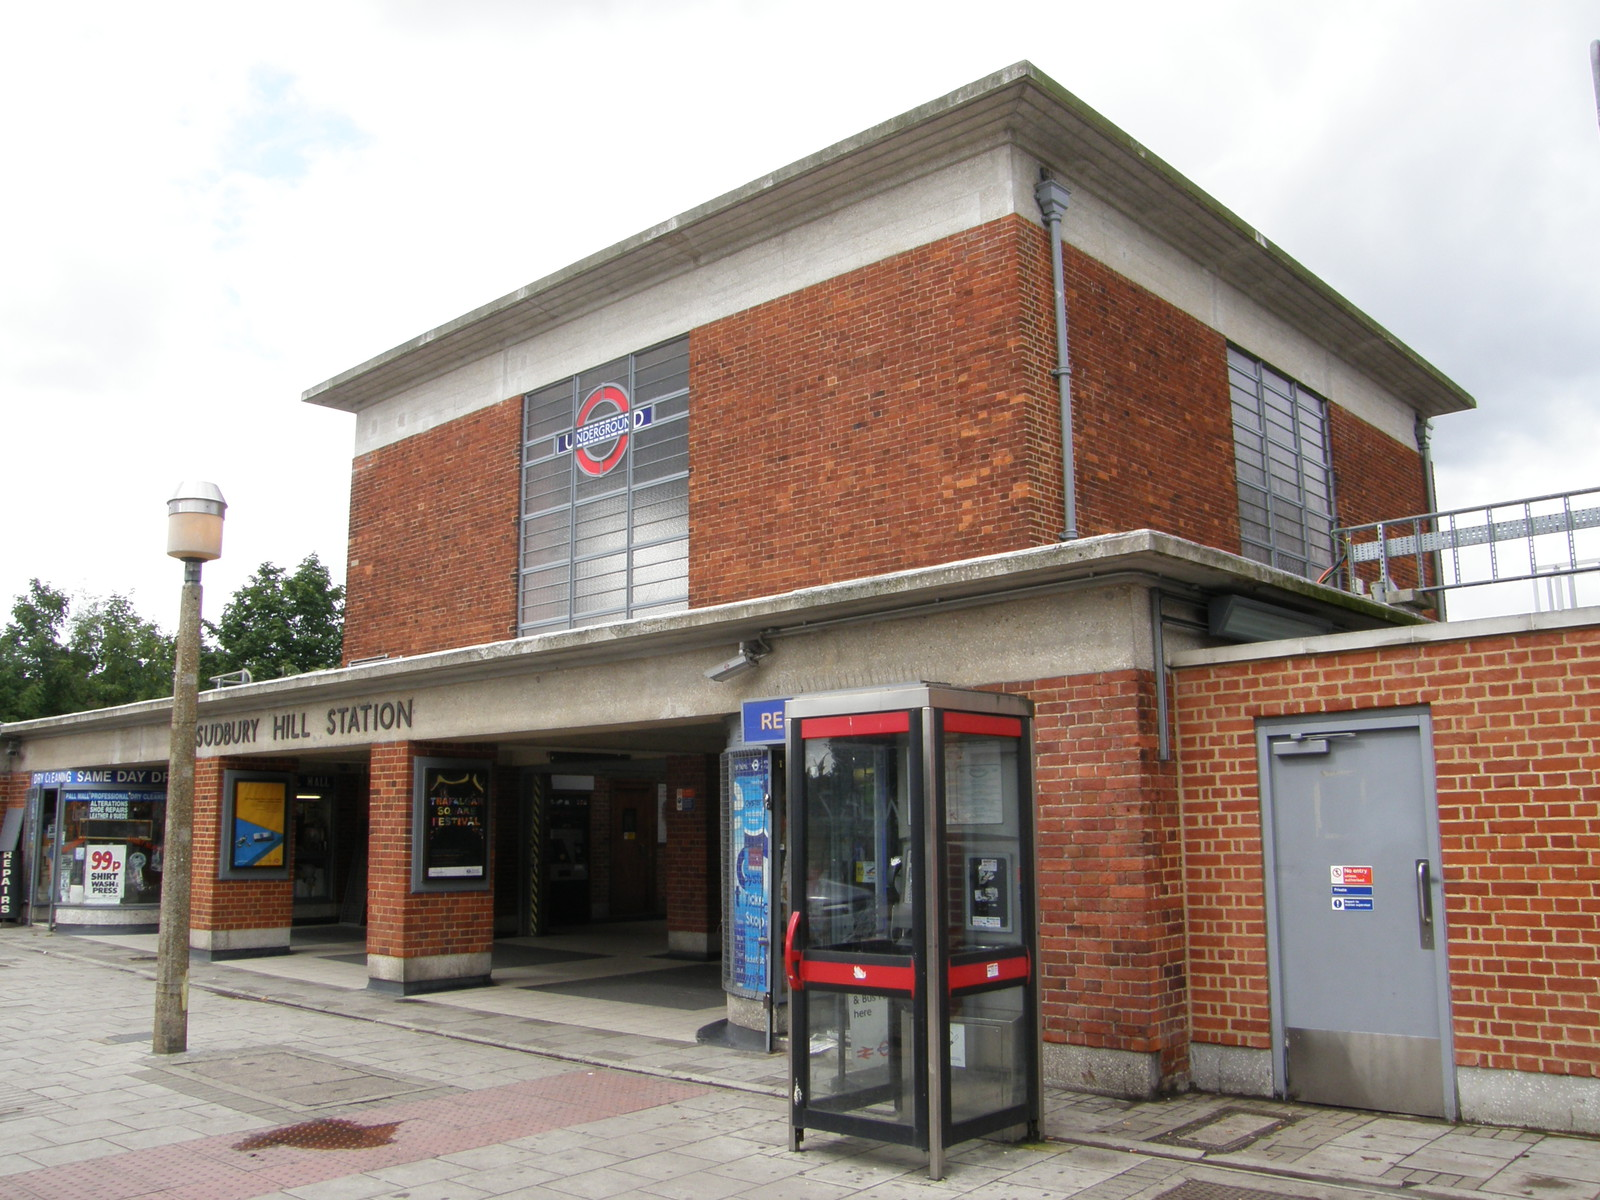 Sudbury Hill station